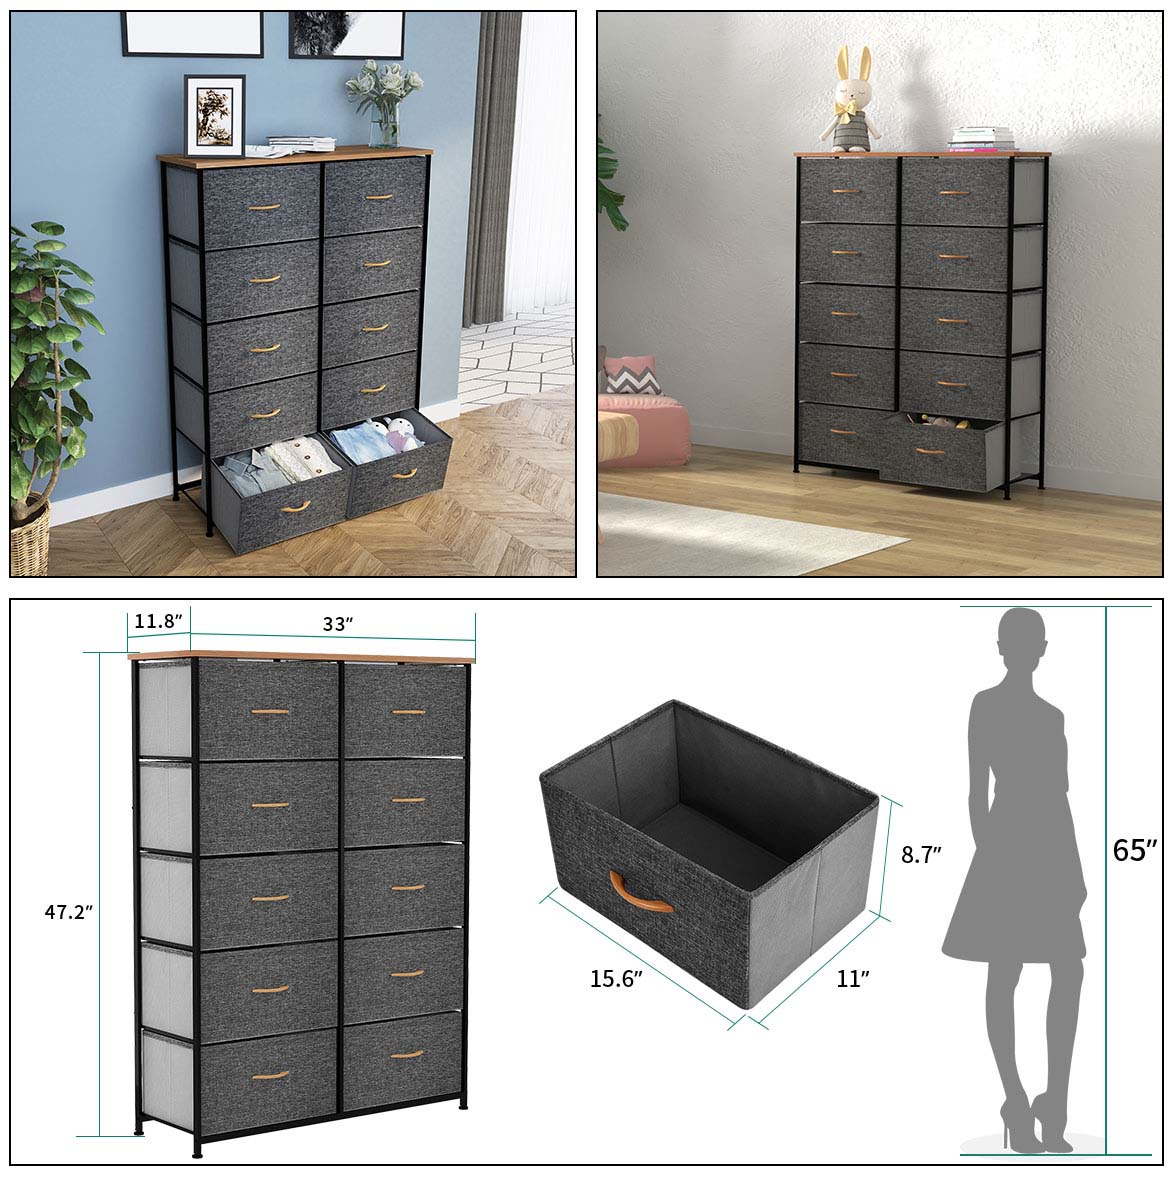 10 drawer chest detail size